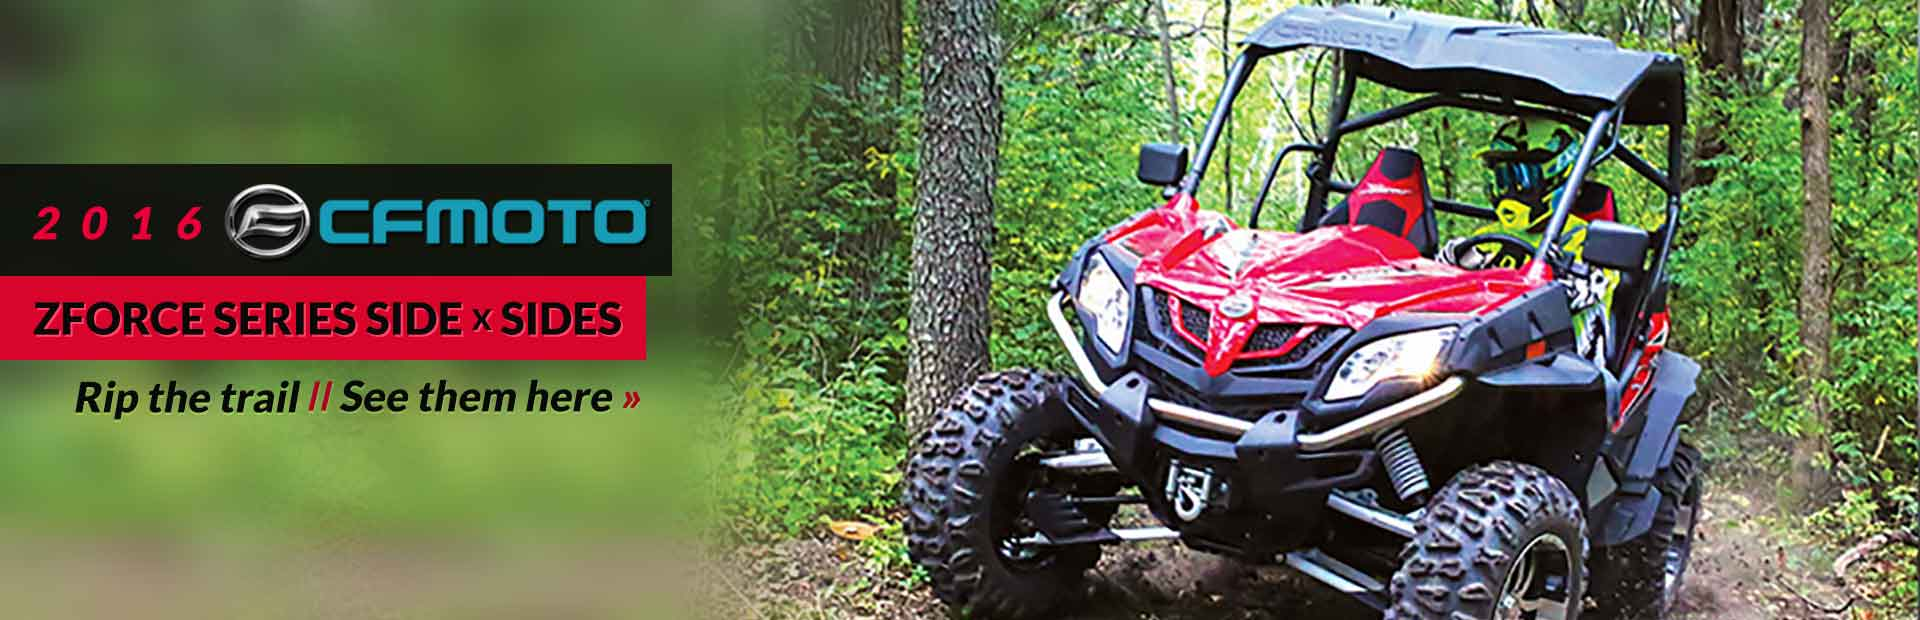 2016 CFMOTO ZFORCE Series Side x Sides: Click here to view the showcase!